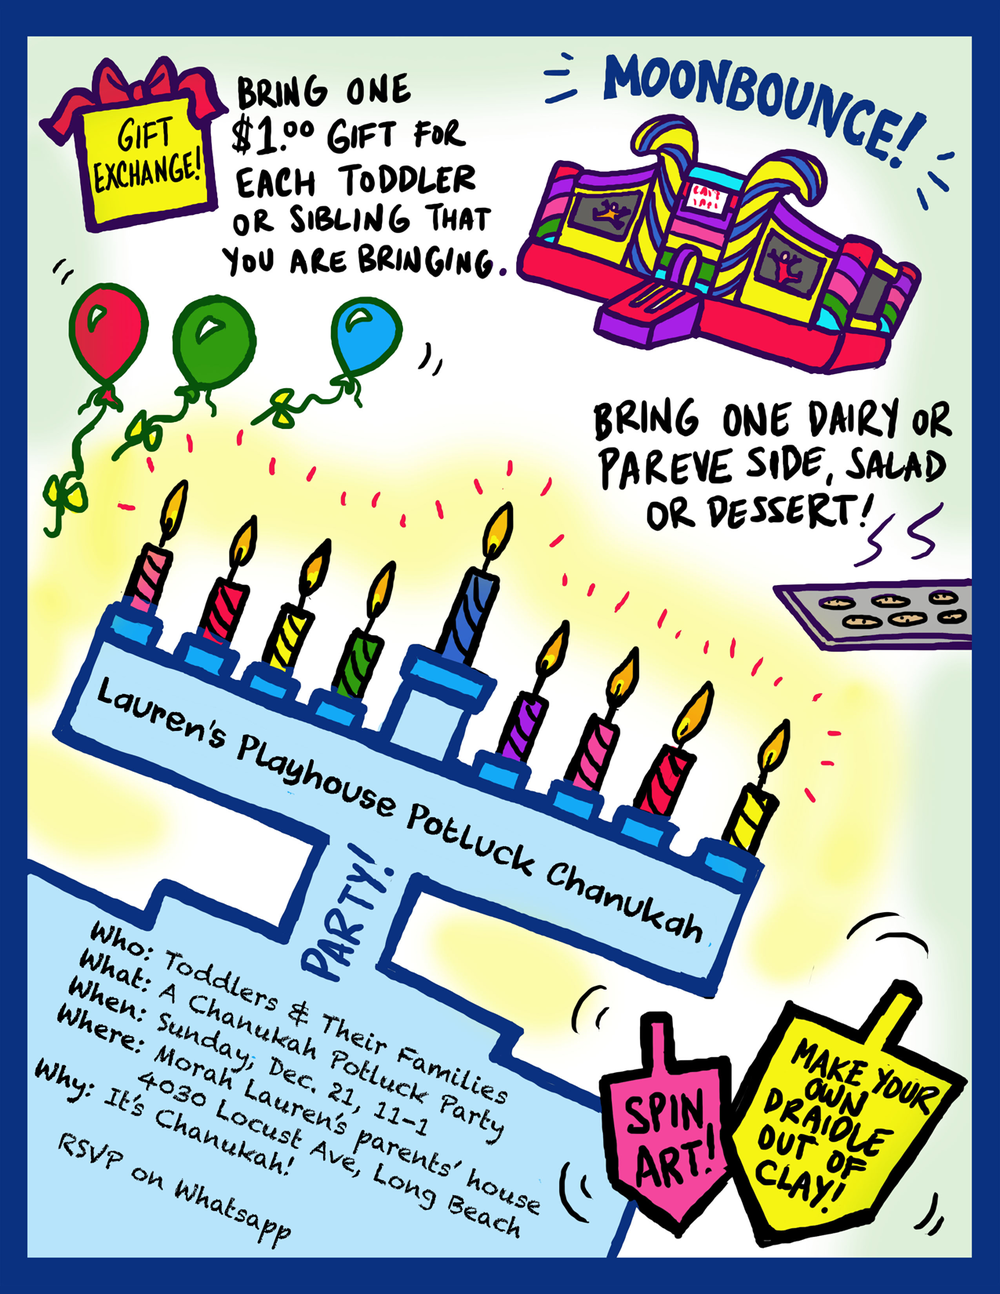 Kids' Chanukah Party Flyer